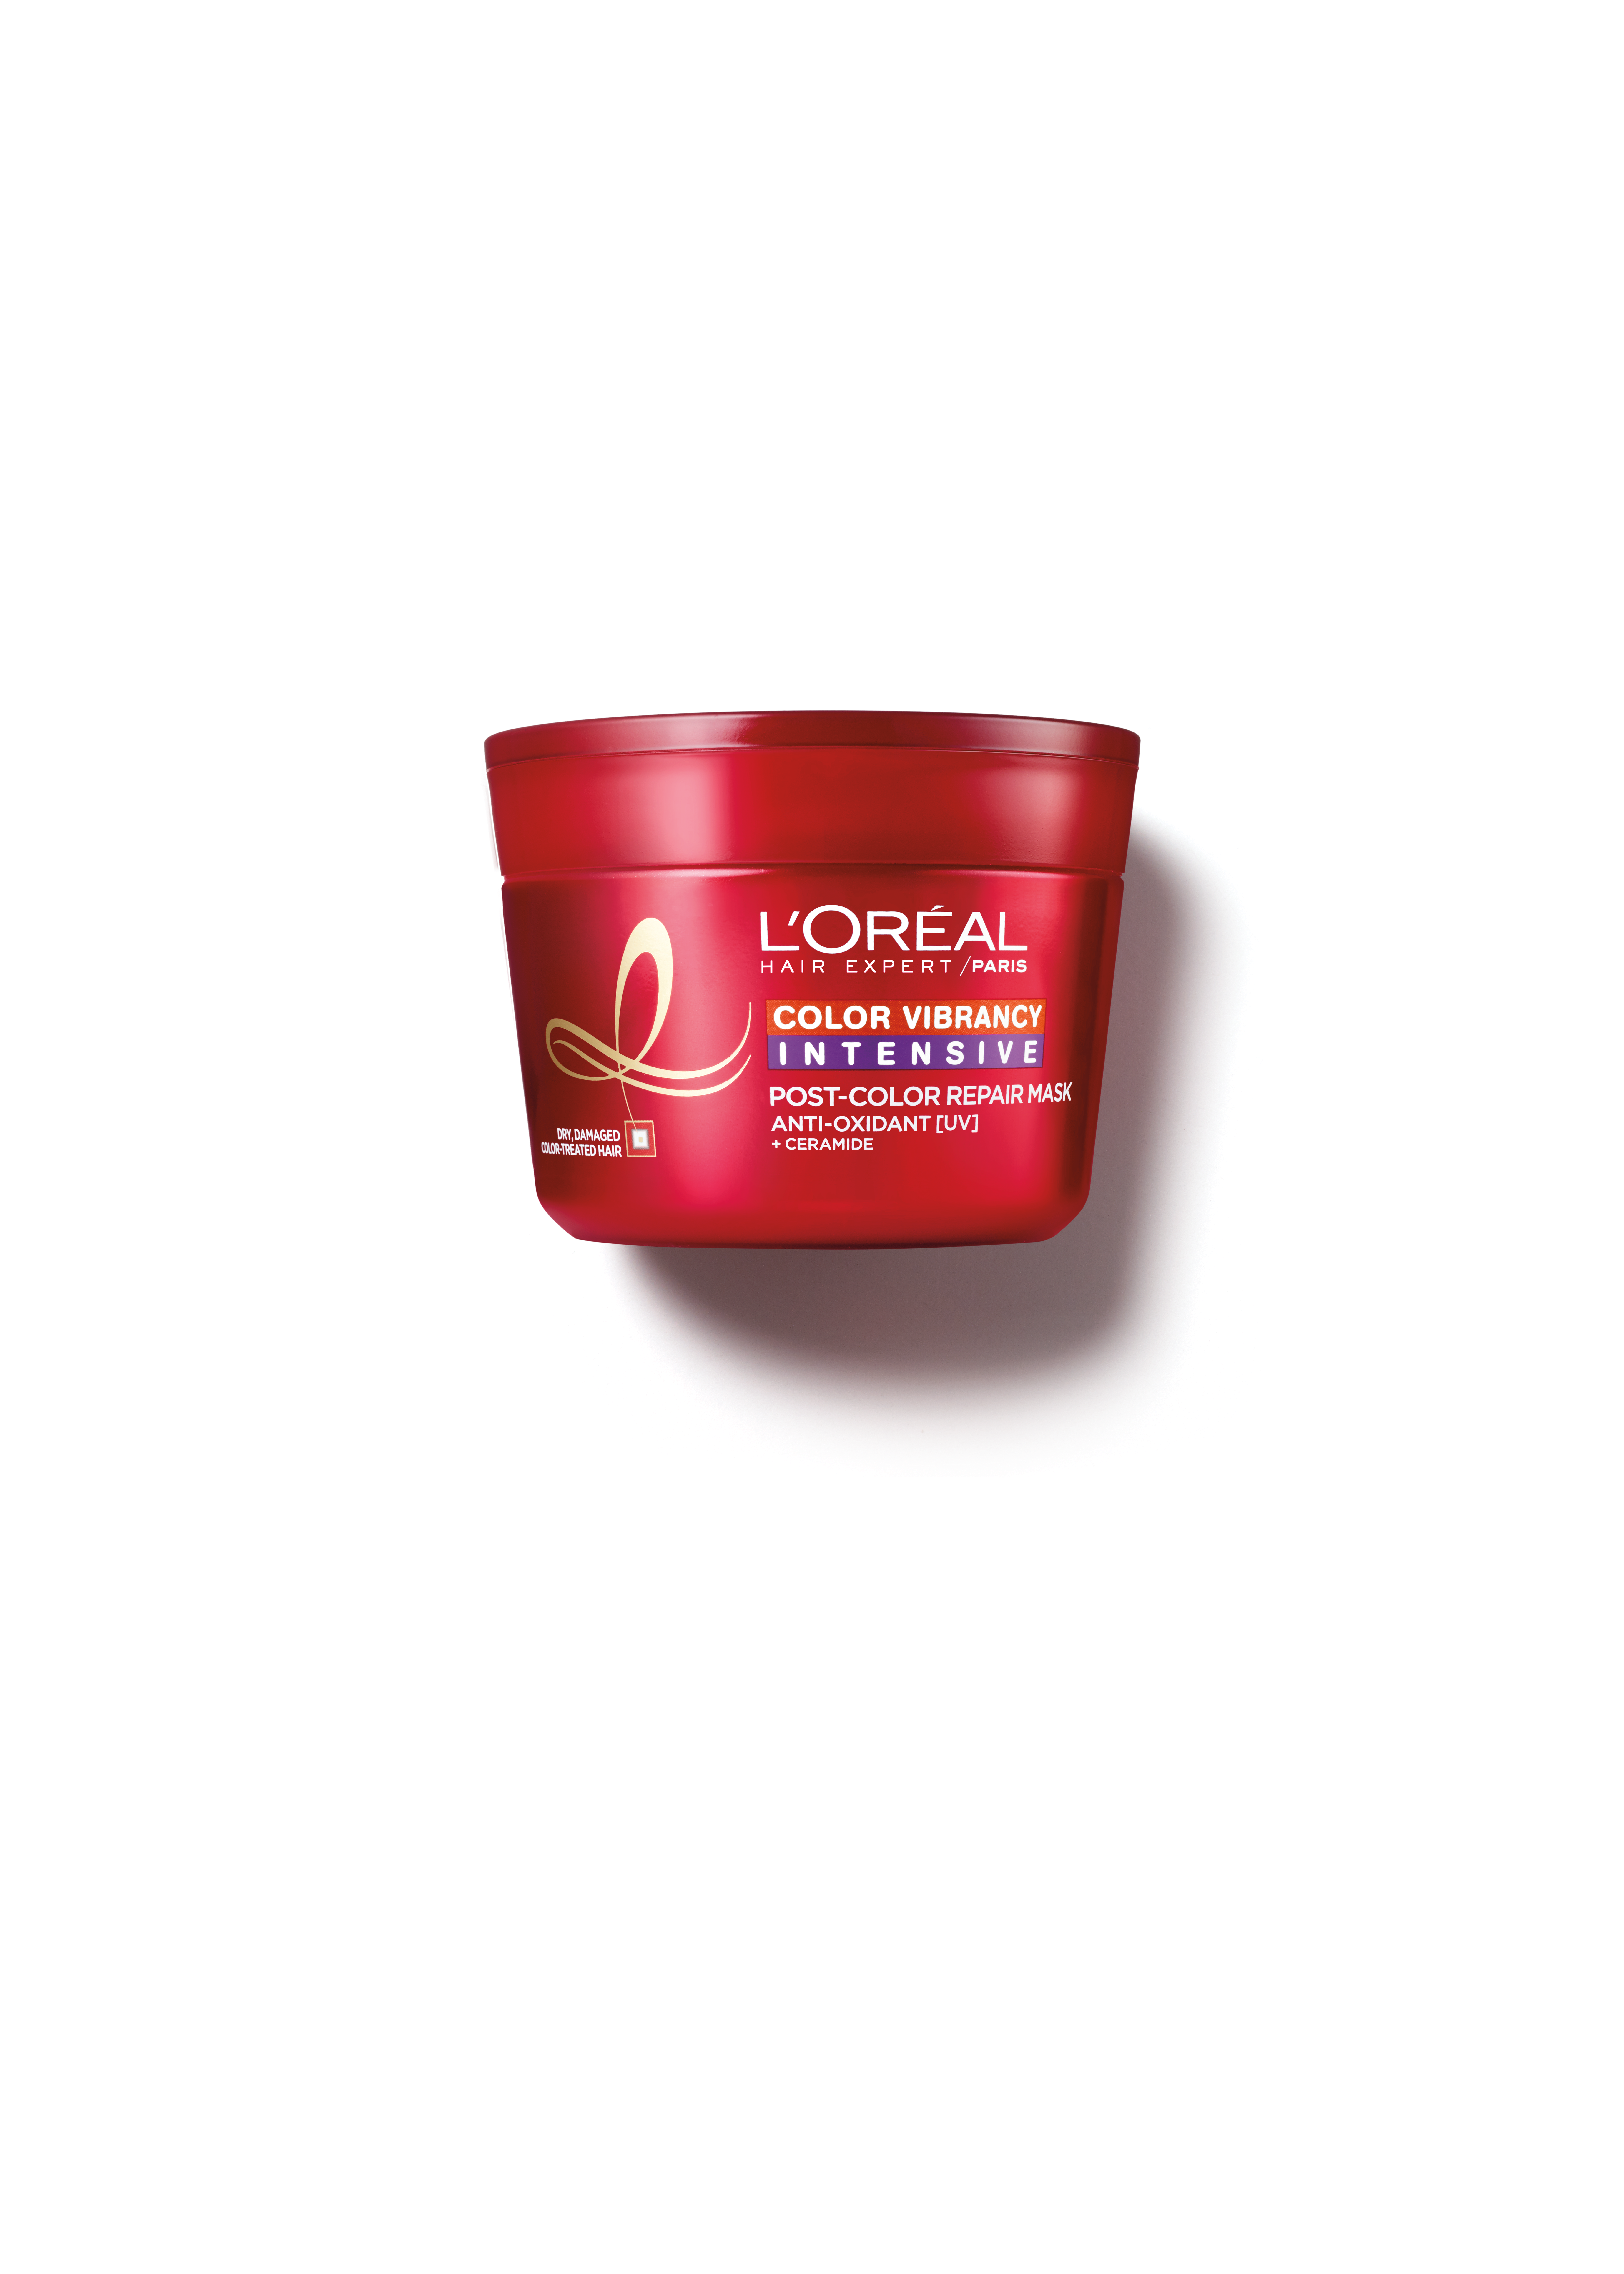 L'Oréal Color Vibrancy Intensive Post-Color Repair Mask